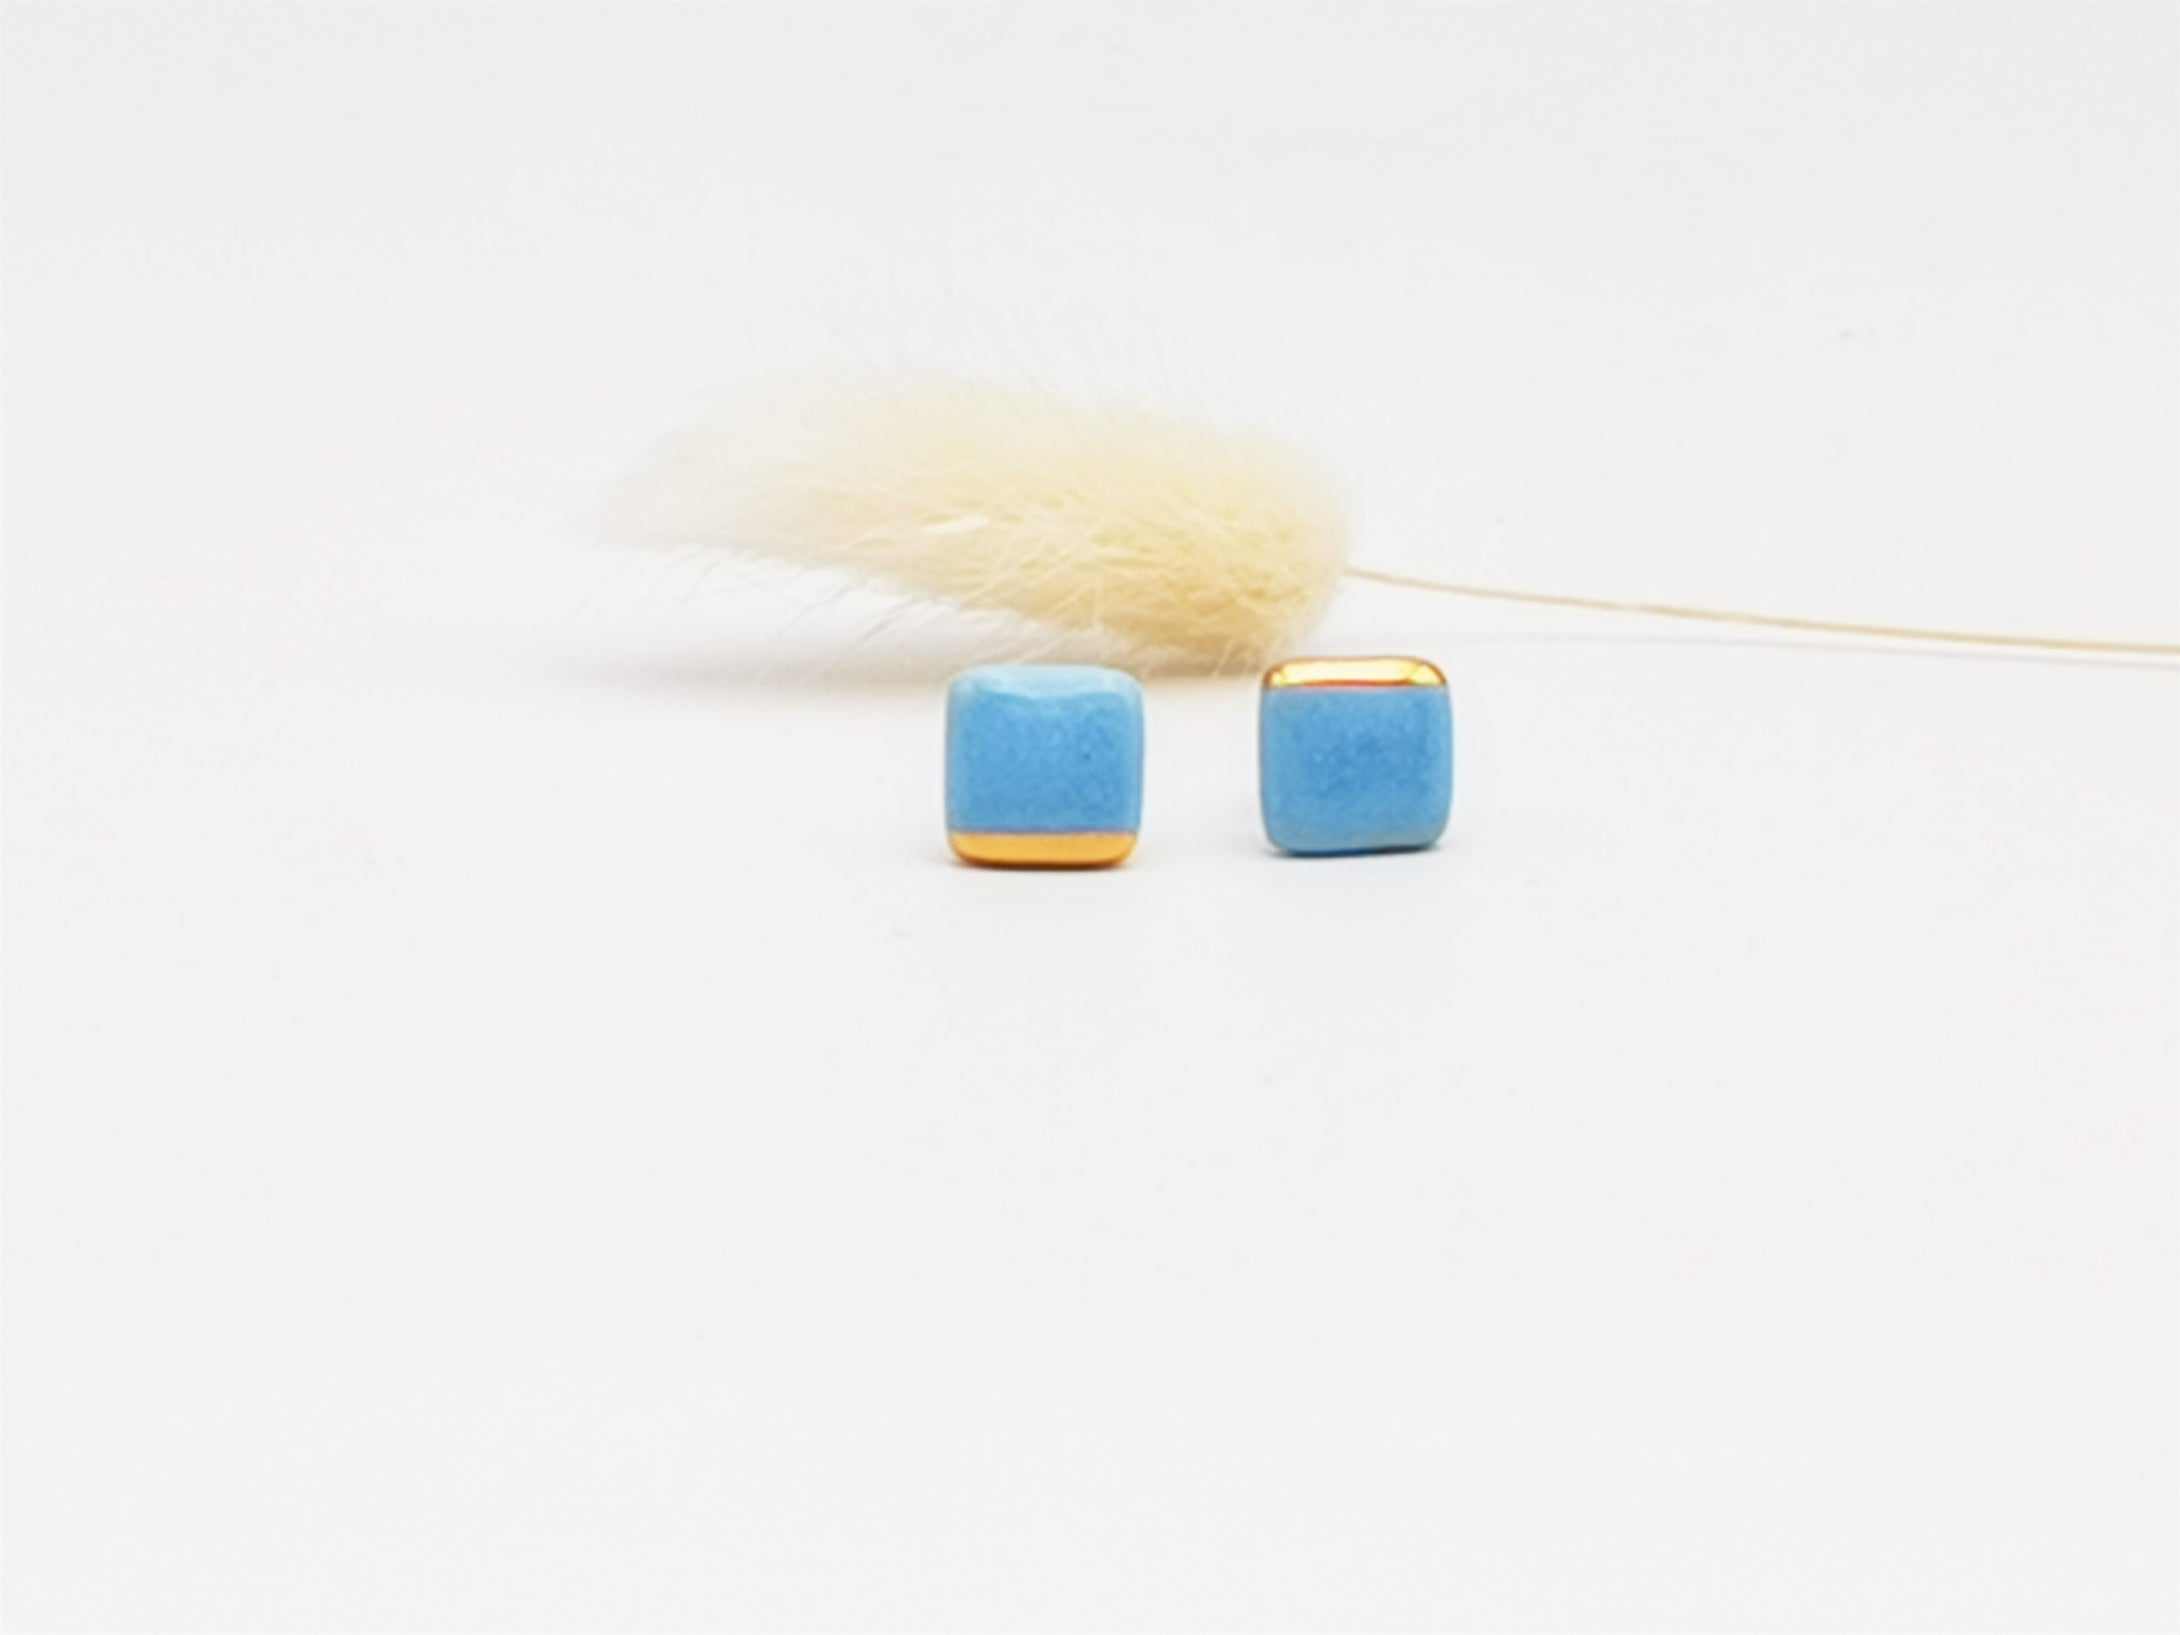 Square Earring in Aqua with Golden Lining - O I A  ceramics